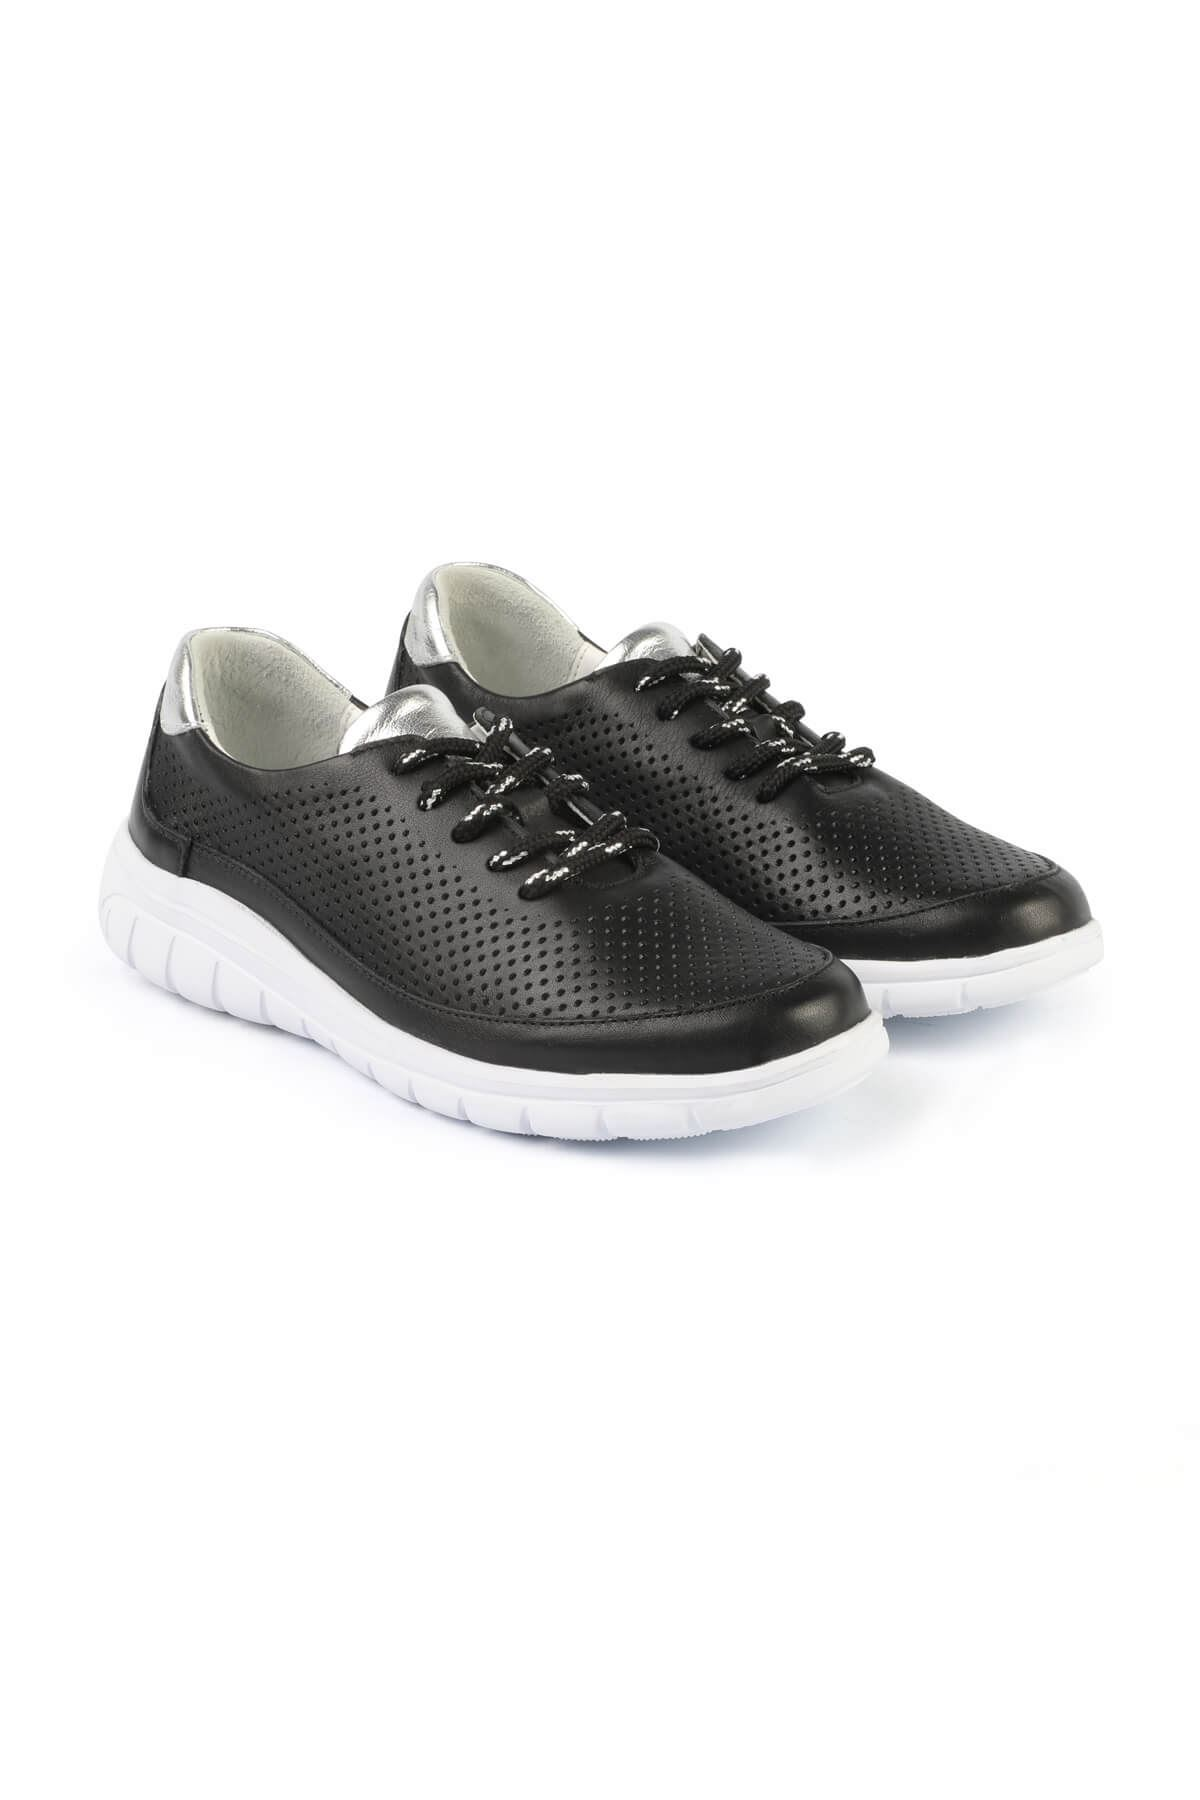 Libero FMS231 Black Sports Shoes